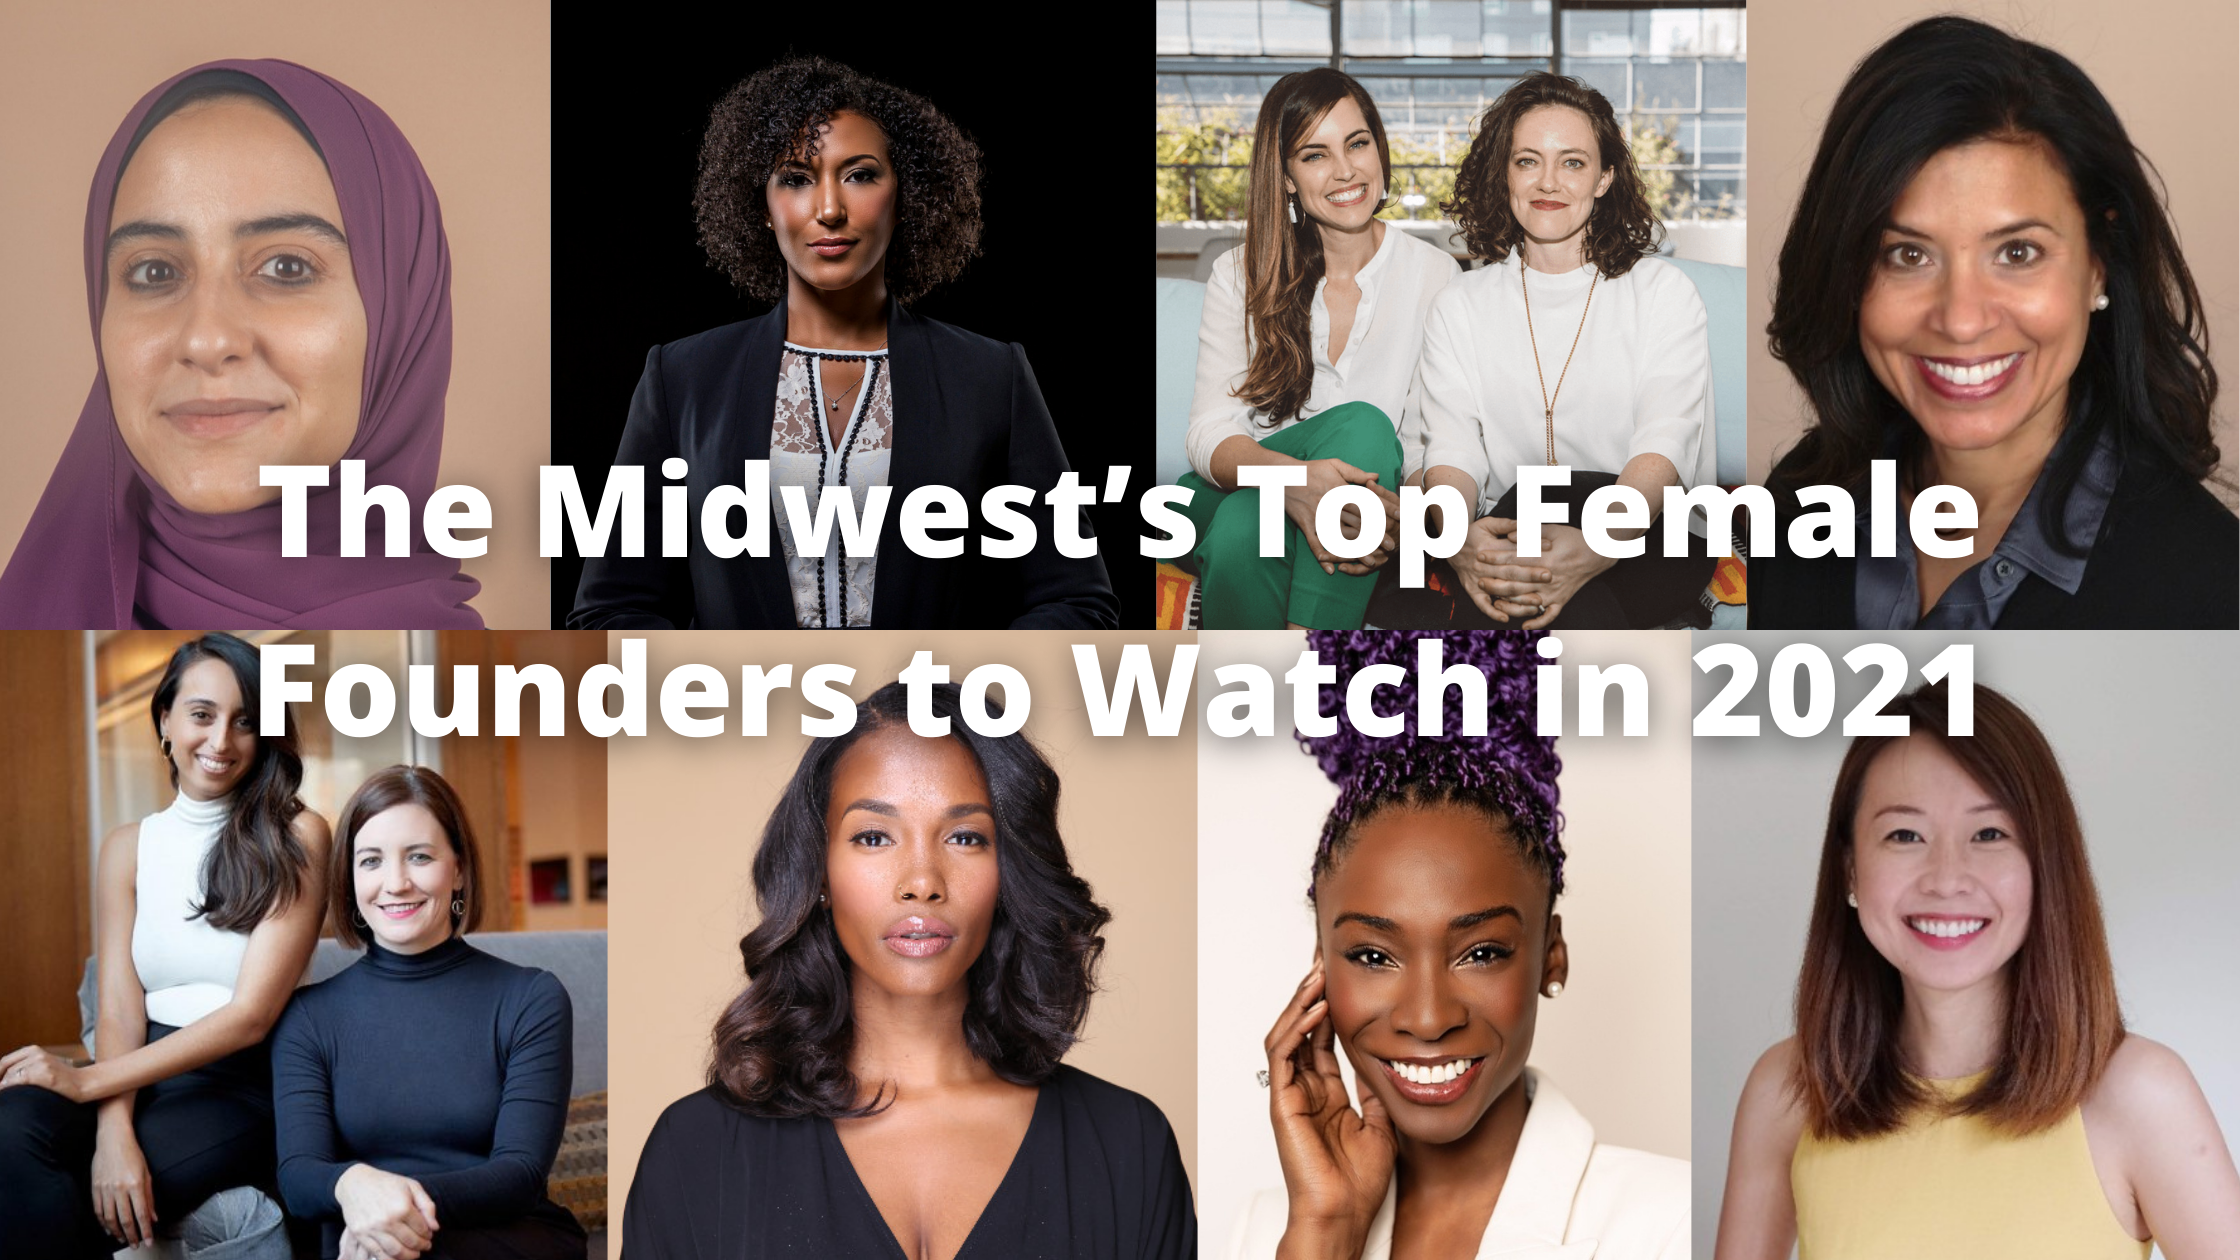 The Midwest's Top Female Founders to Watch in 2021